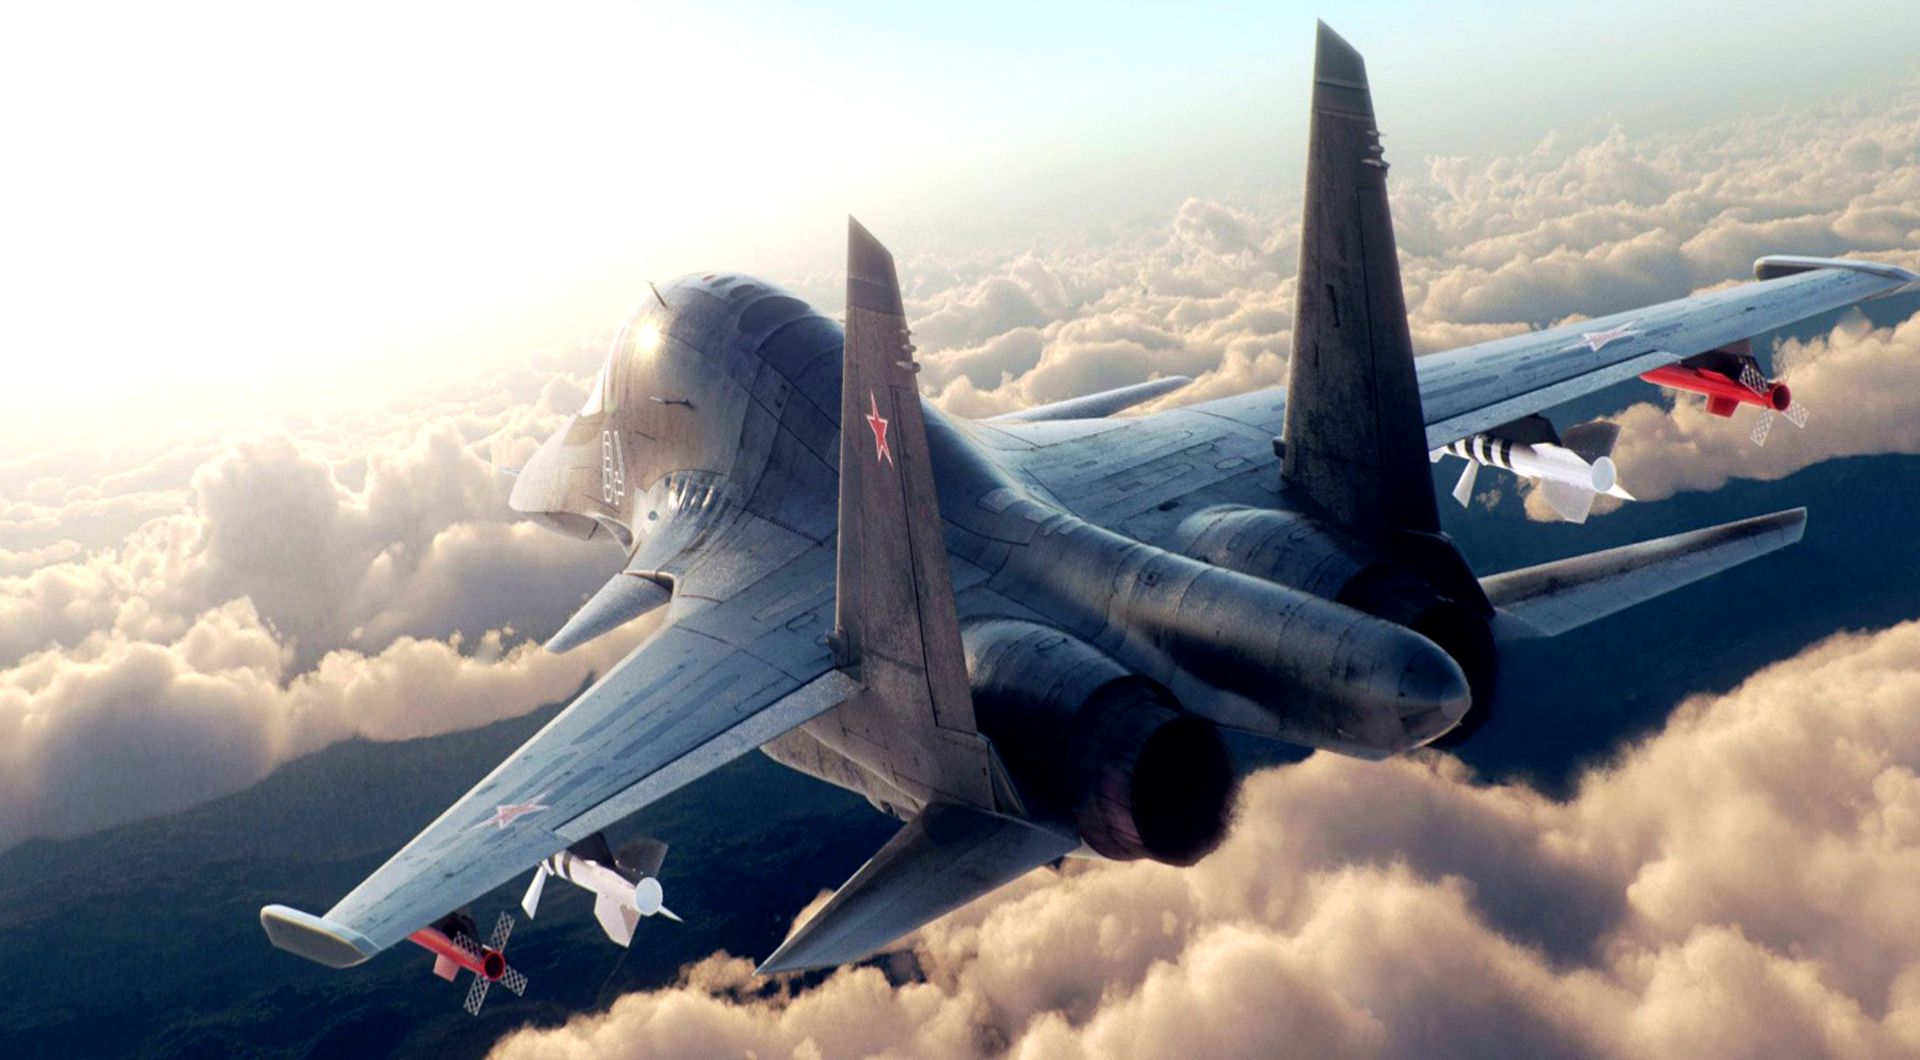 russian fighter plane hd wallpaper - hd wallpapers 4 us | hd